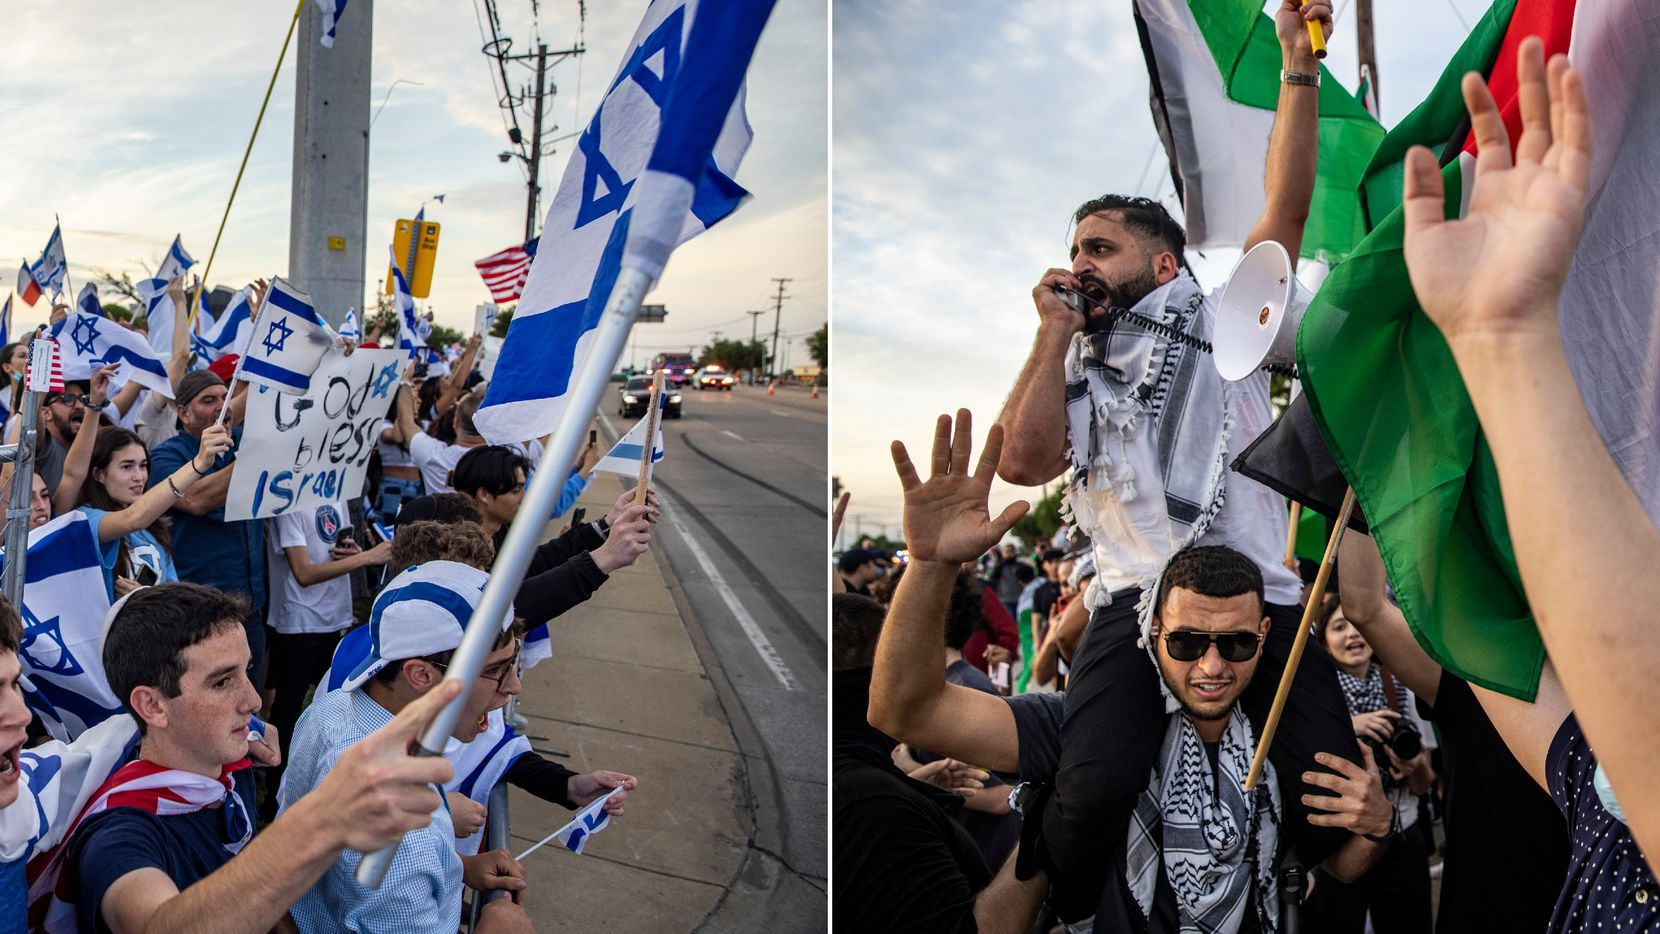 Hundreds of people supporting Israel, and hundreds more supporting Palestinians, demonstrated along Preston Road in Far North Dallas on Wednesday.